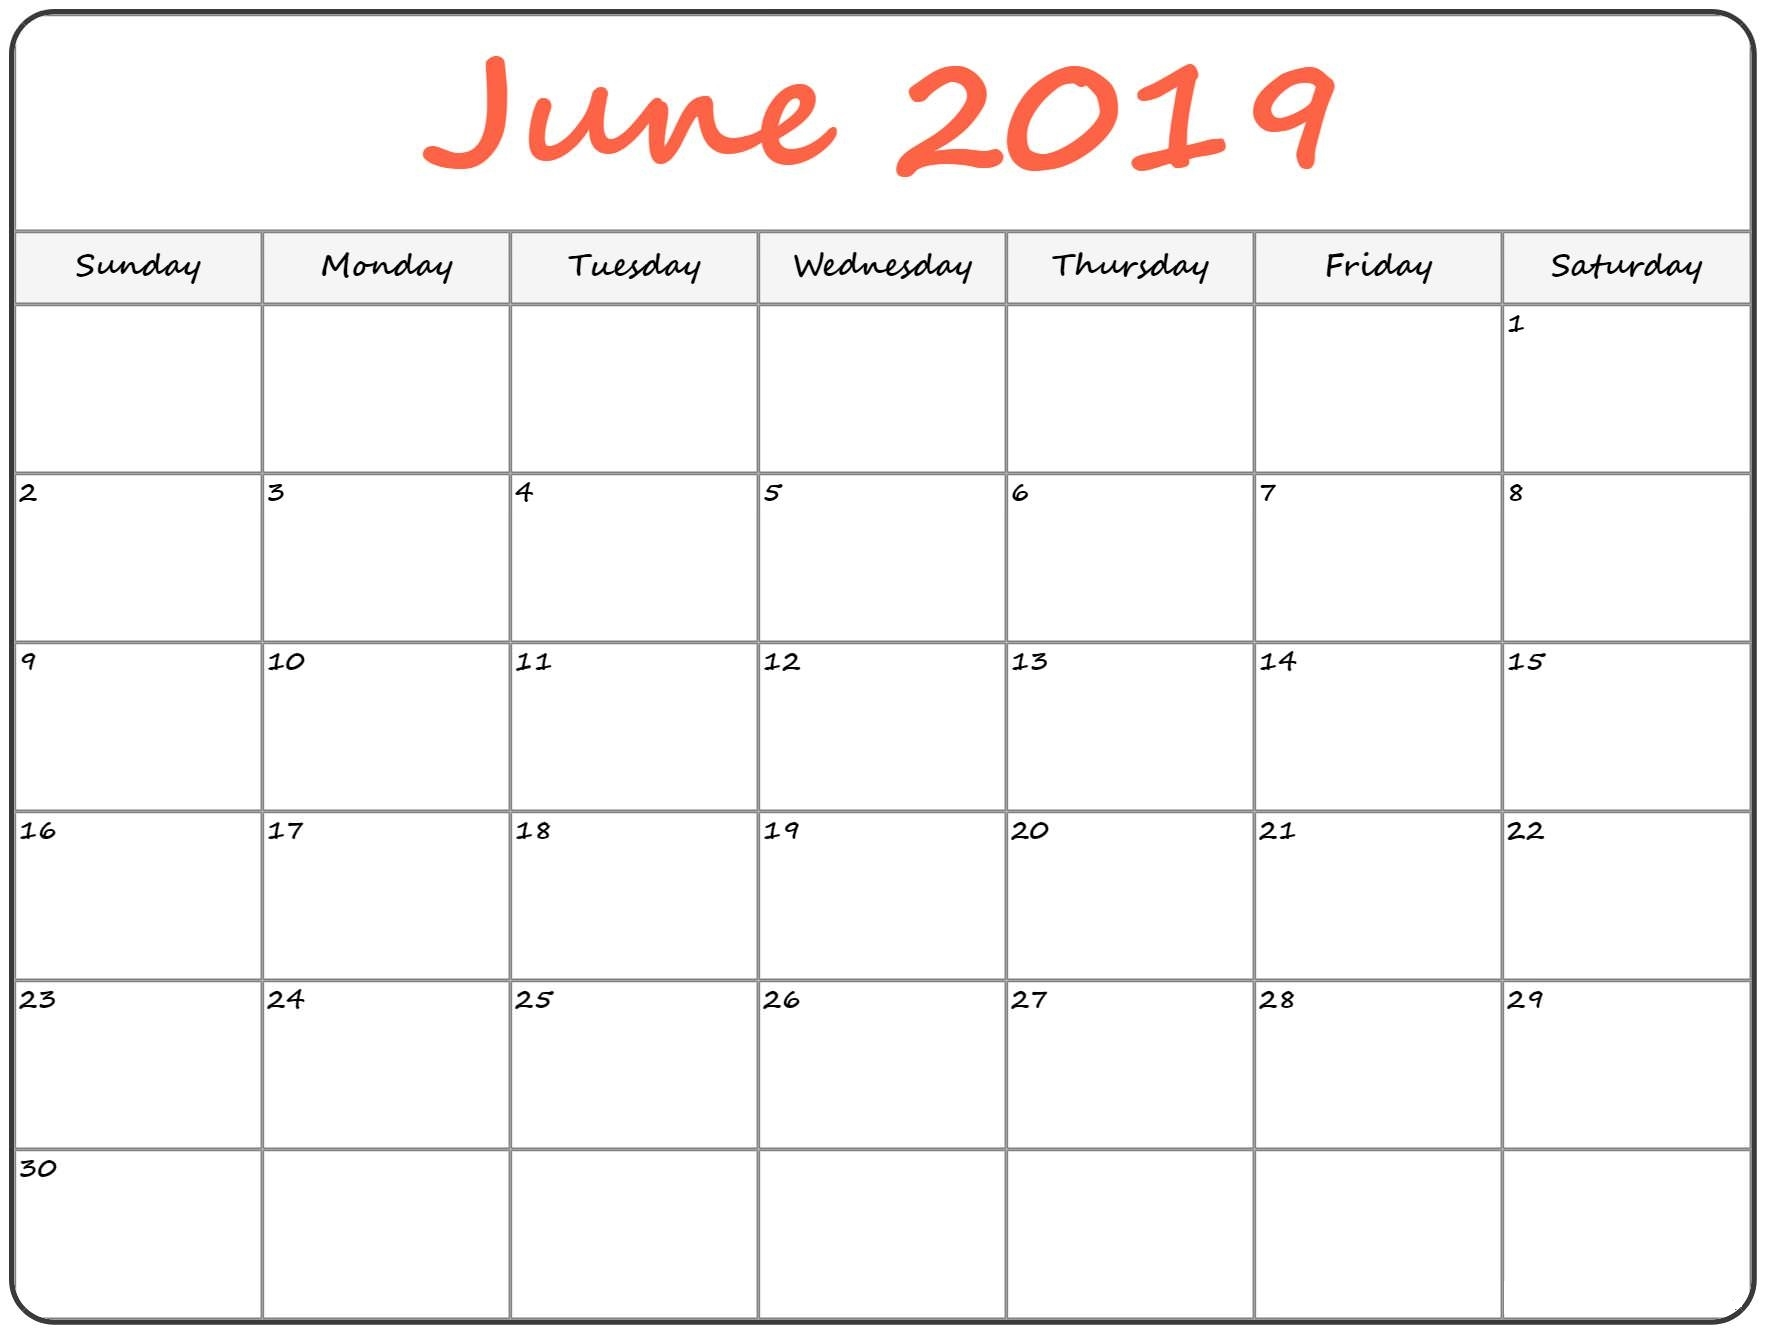 june 2019 holiday blank calendar download printable::June 2019 Calendar